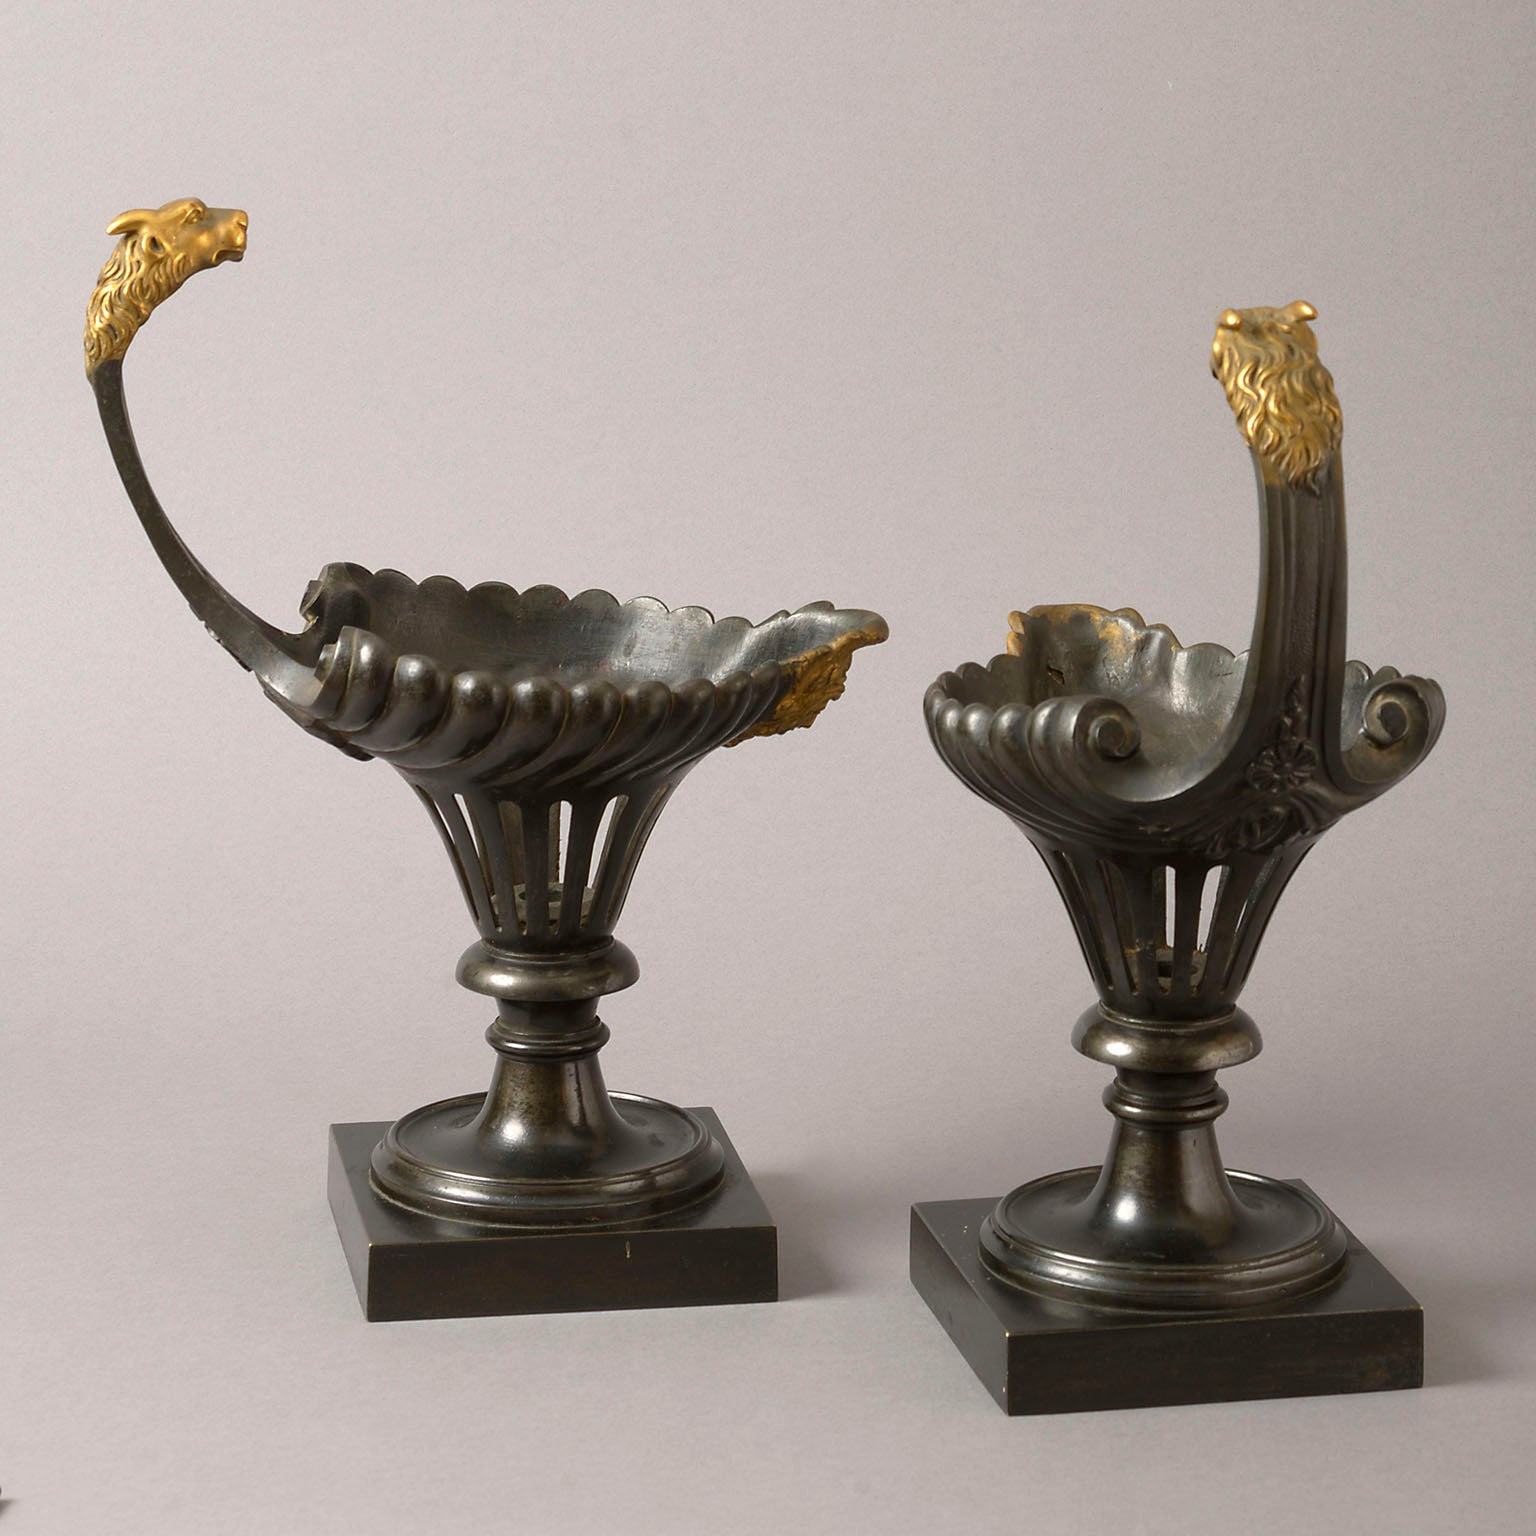 Pair of Bronze and Gilt Ewer Shaped Oil Lamps